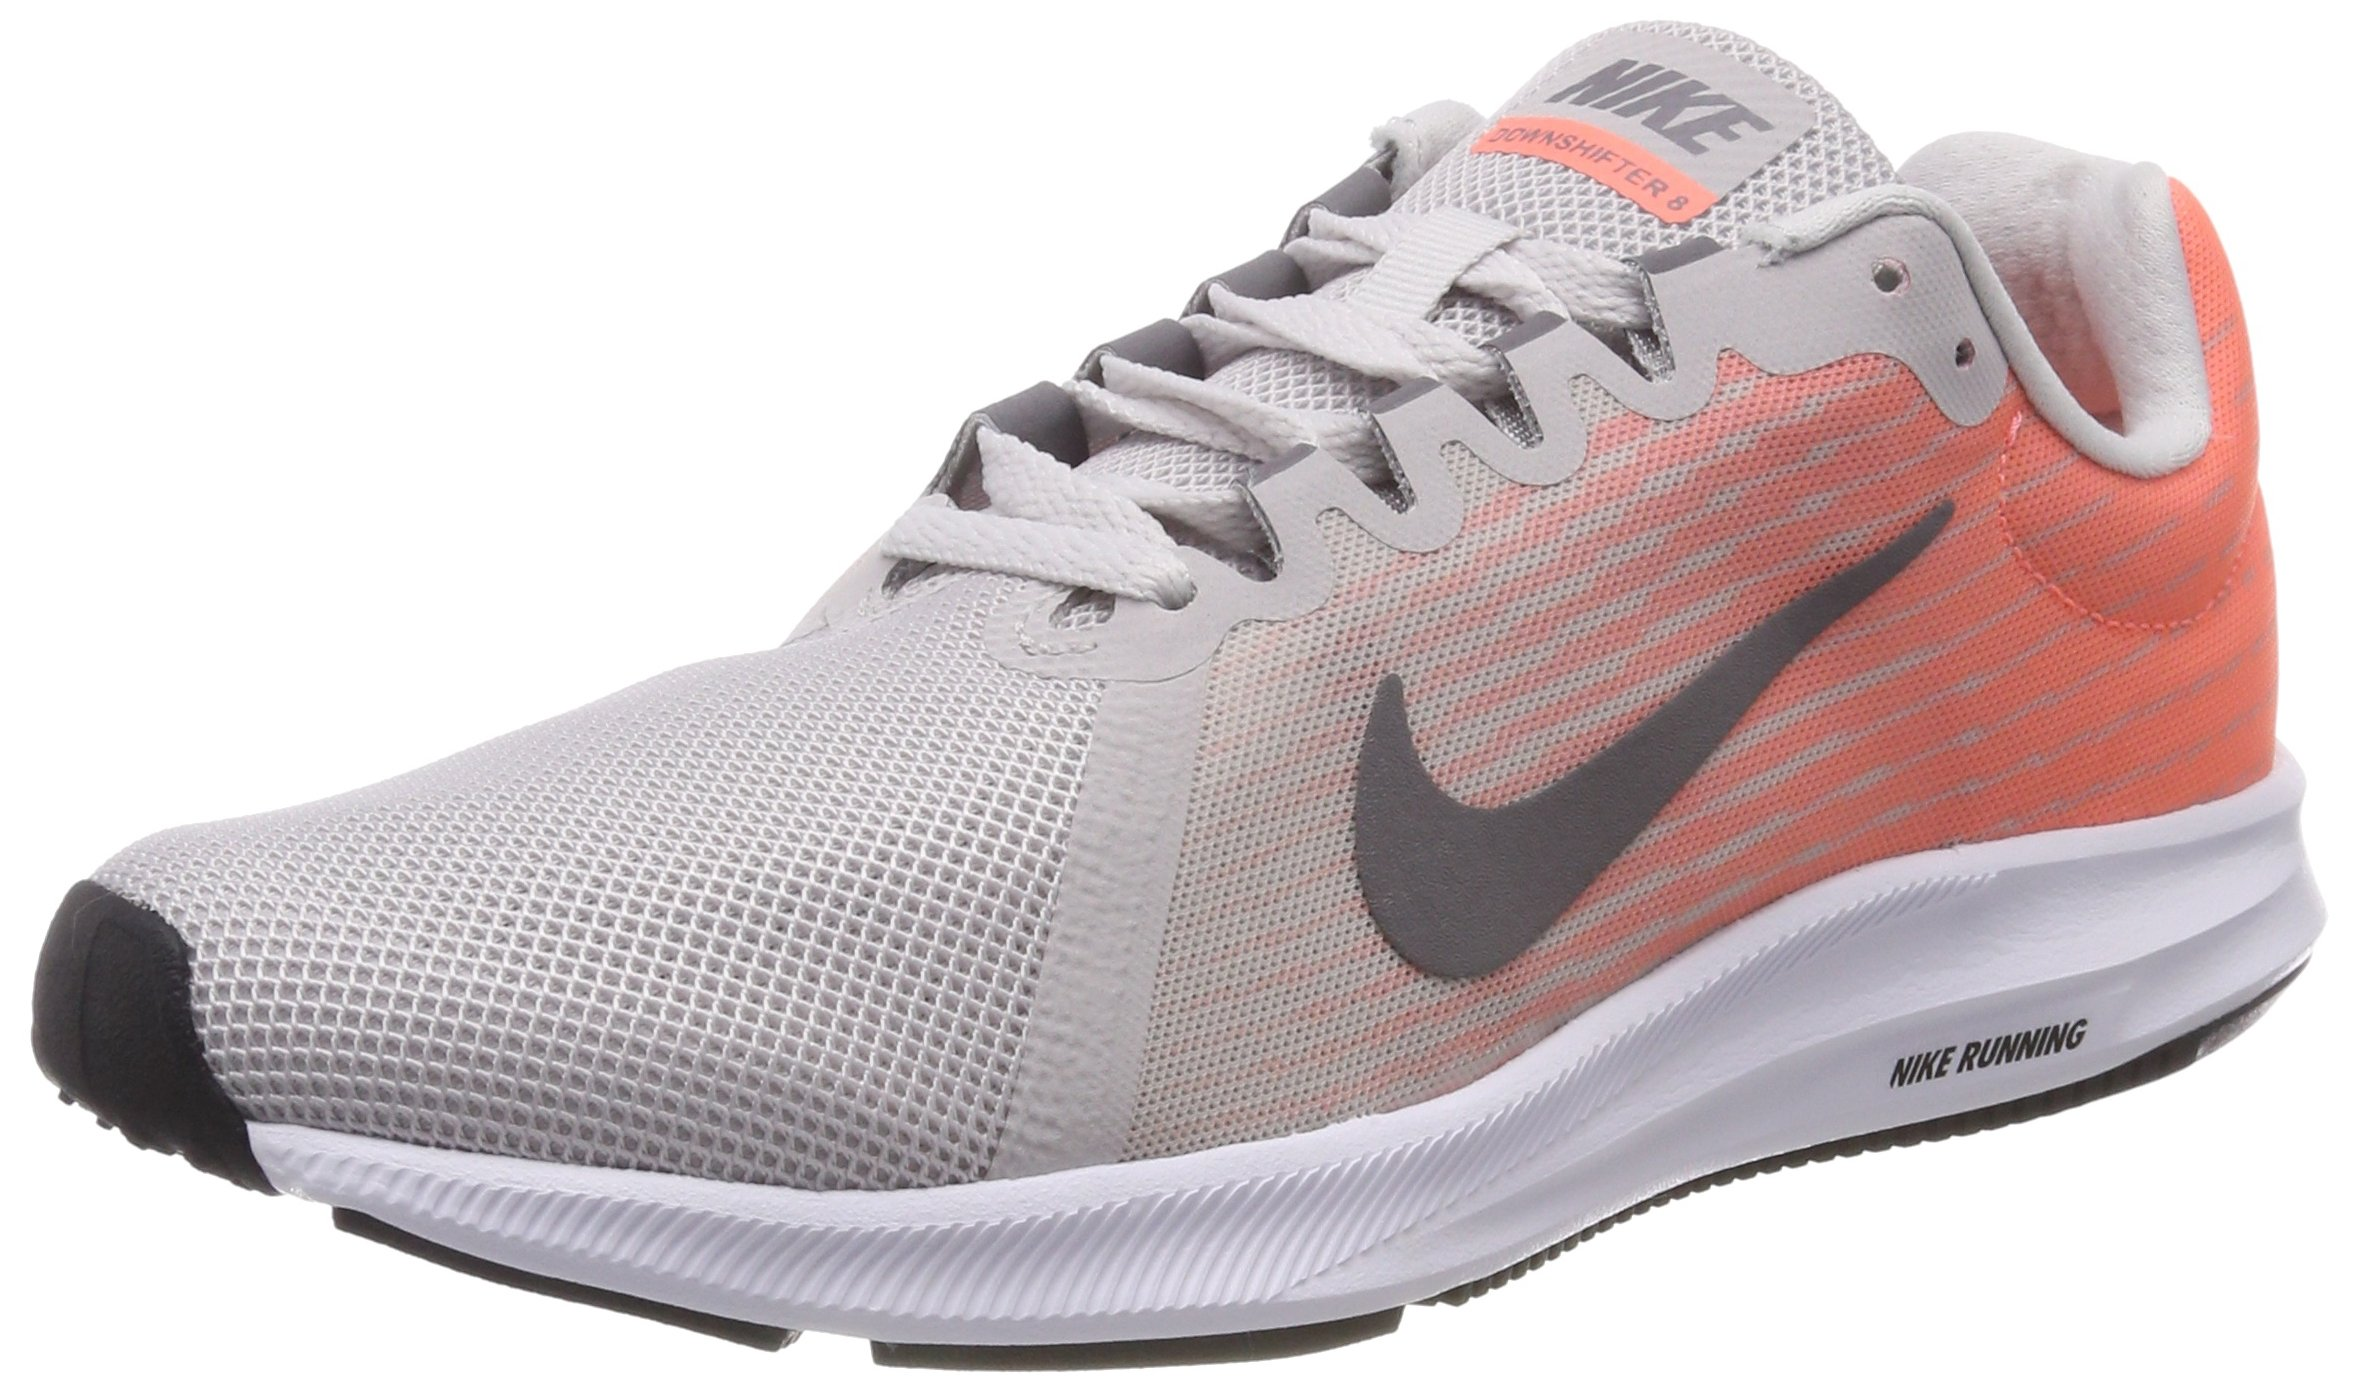 e83d84197d7a6 Nike Women's Downshifter 8 Running Shoes (9, Grey/White/Pink)